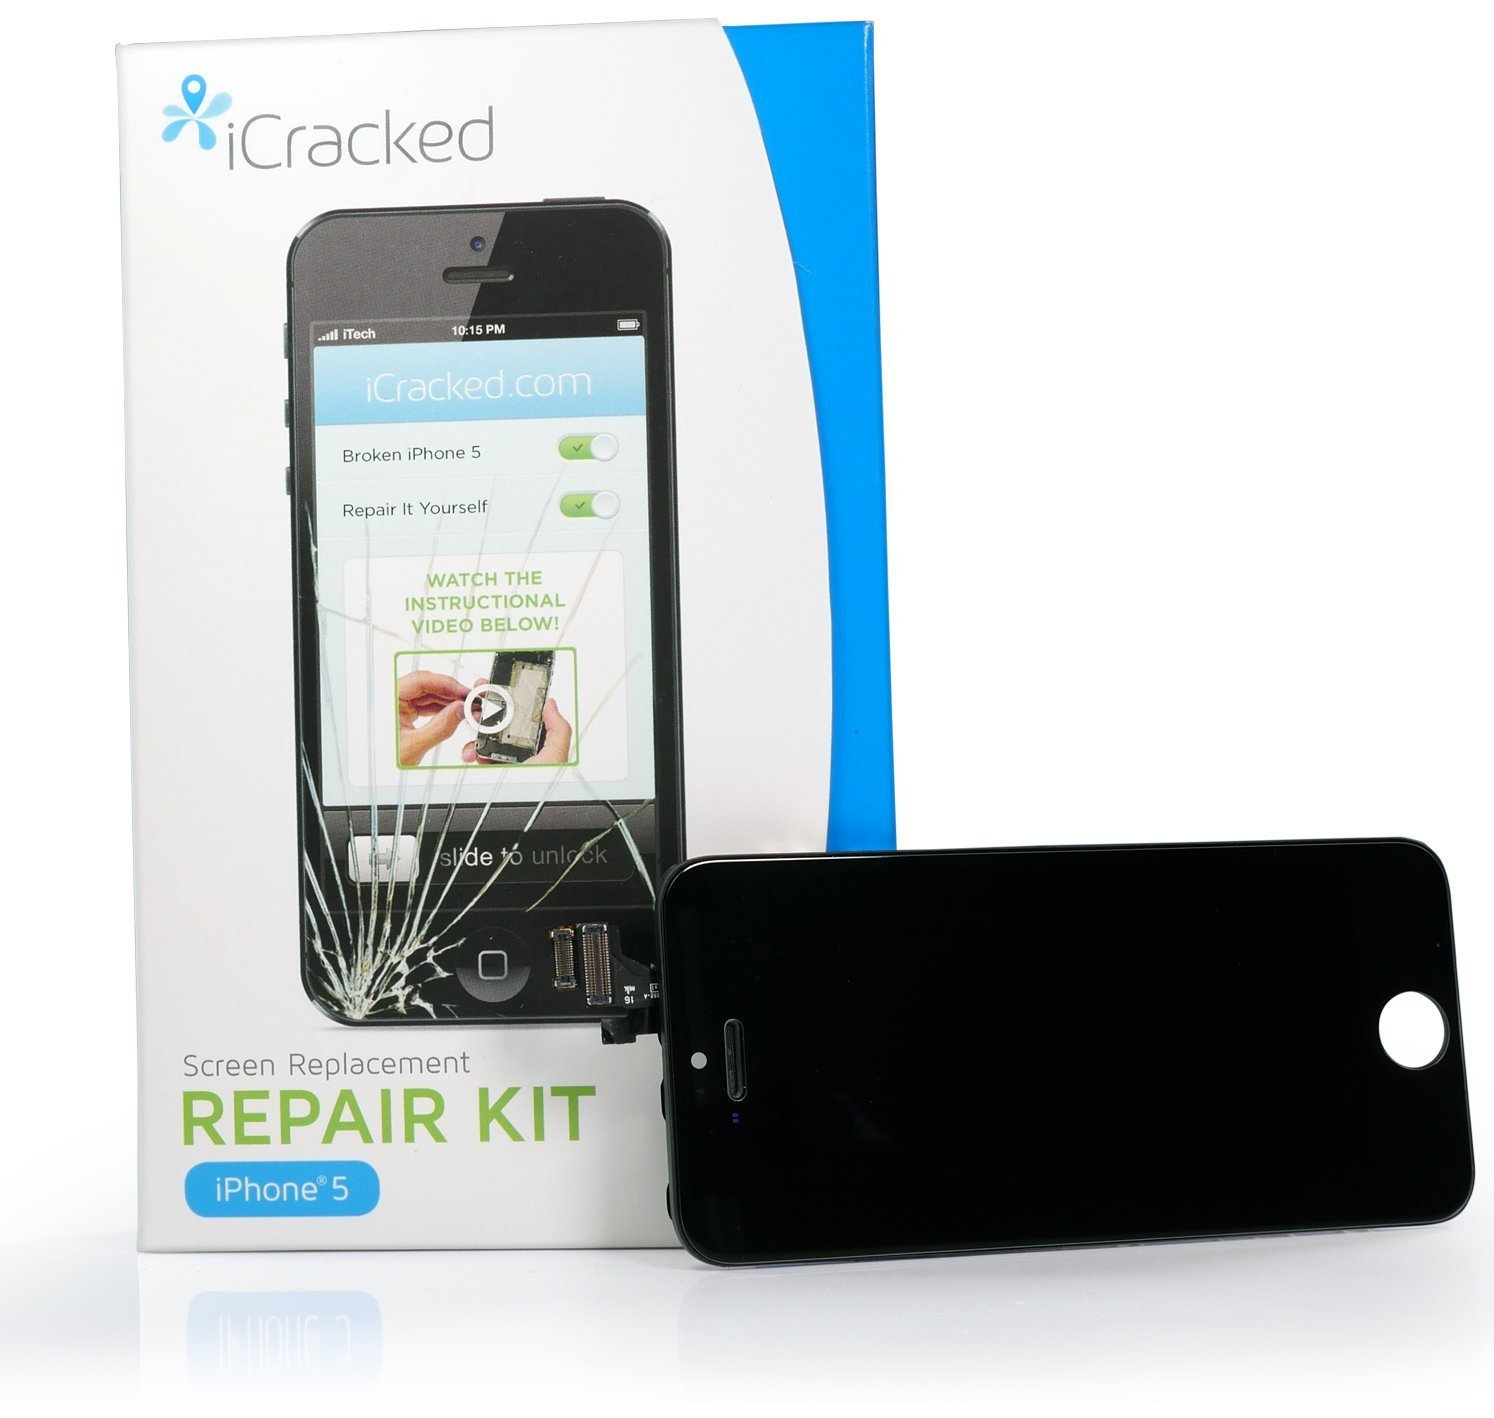 iphone 4s screen replacement icracked iphone 5 screen replacement kit at amp t verizon 14451